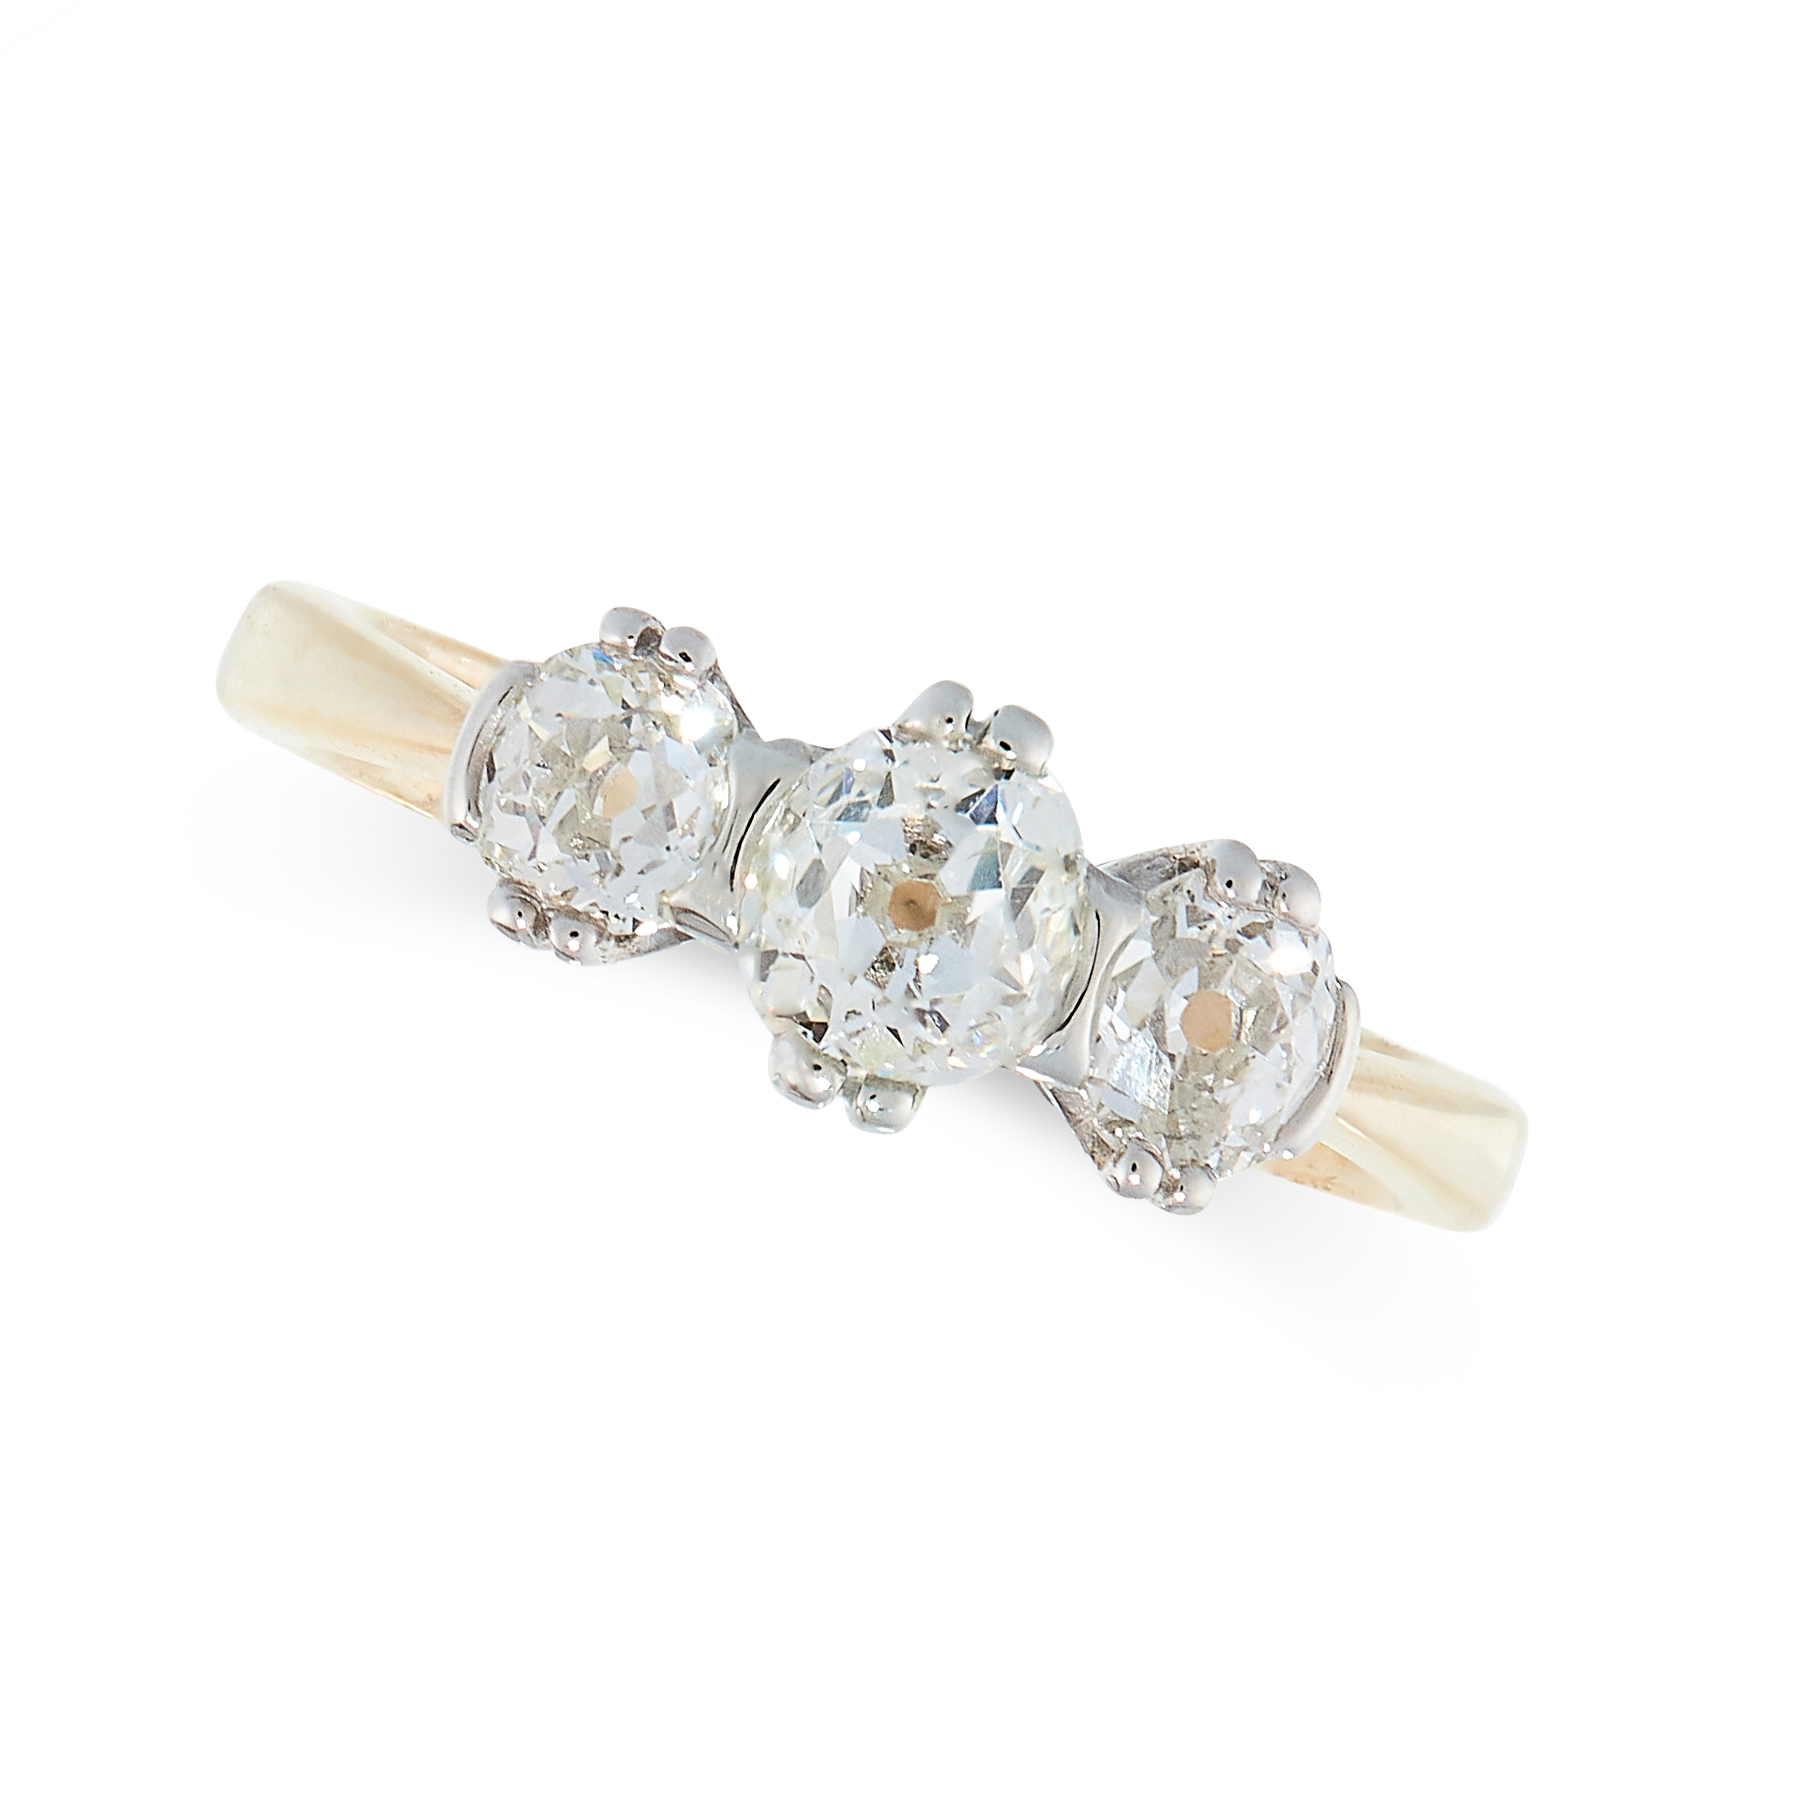 DIAMOND THREE STONE RING in 18ct gold and platinum, set with three old cut diamonds all totalling